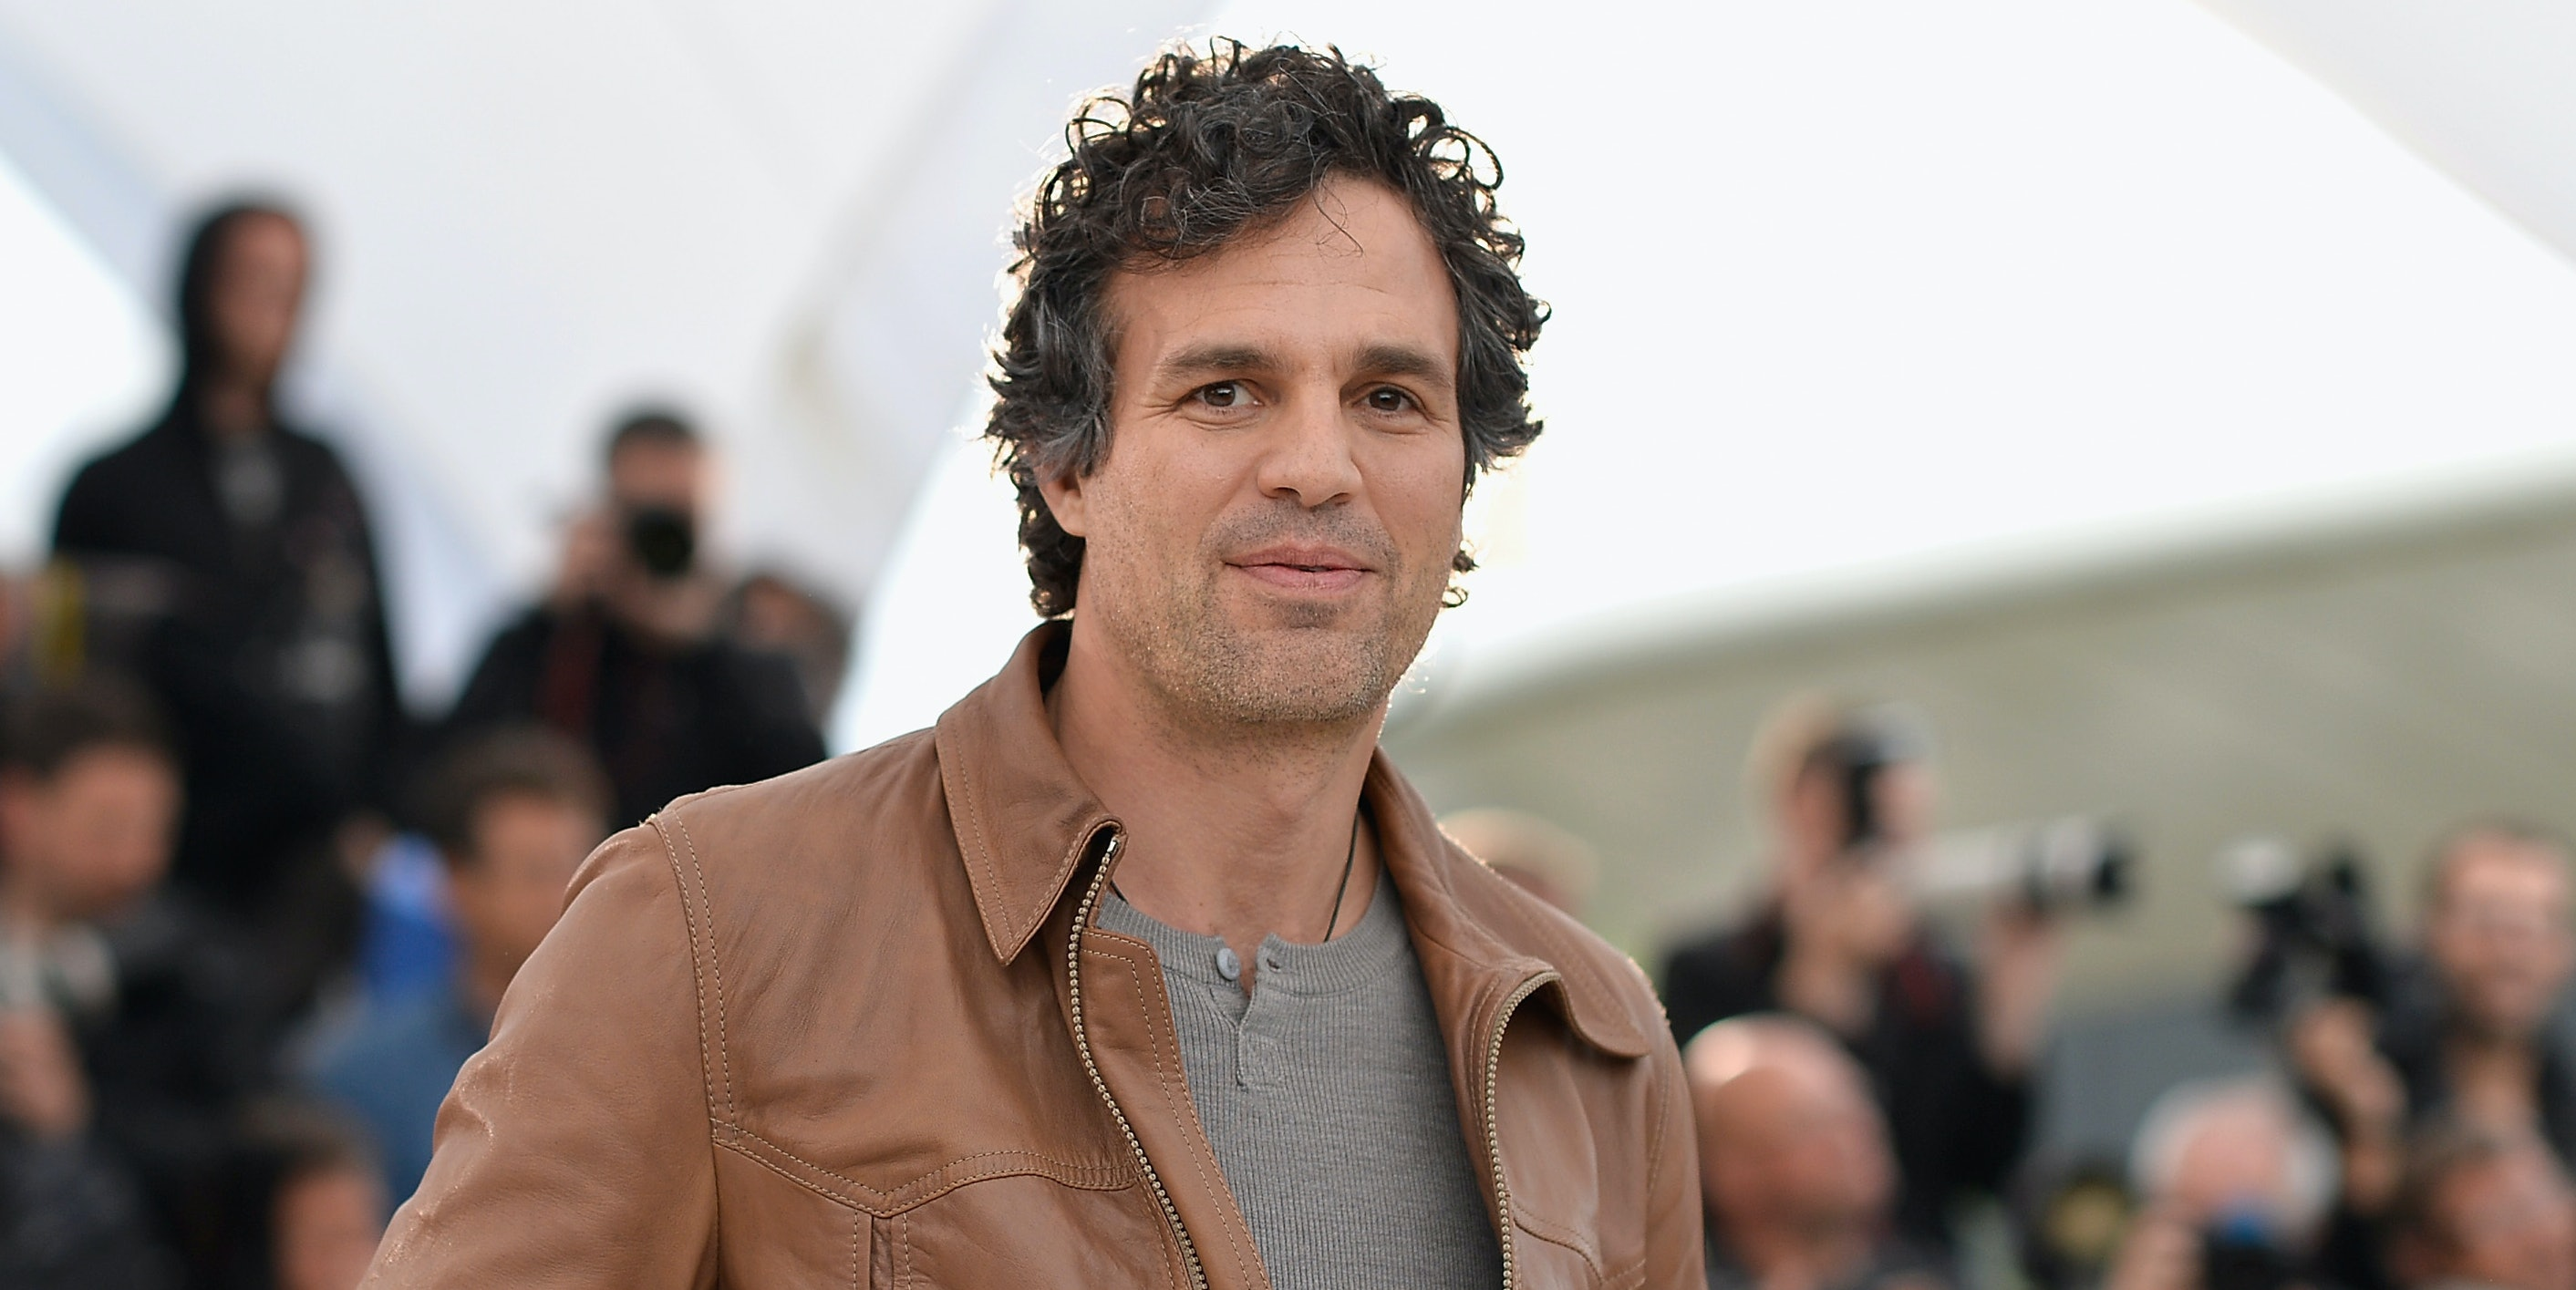 CANNES, FRANCE - MAY 19:  Mark Ruffalo attends the 'Foxcatcher' photocall during the 67th Annual Cannes Film Festival on May 19, 2014 in Cannes, France.  (Photo by Pascal Le Segretain/Getty Images)